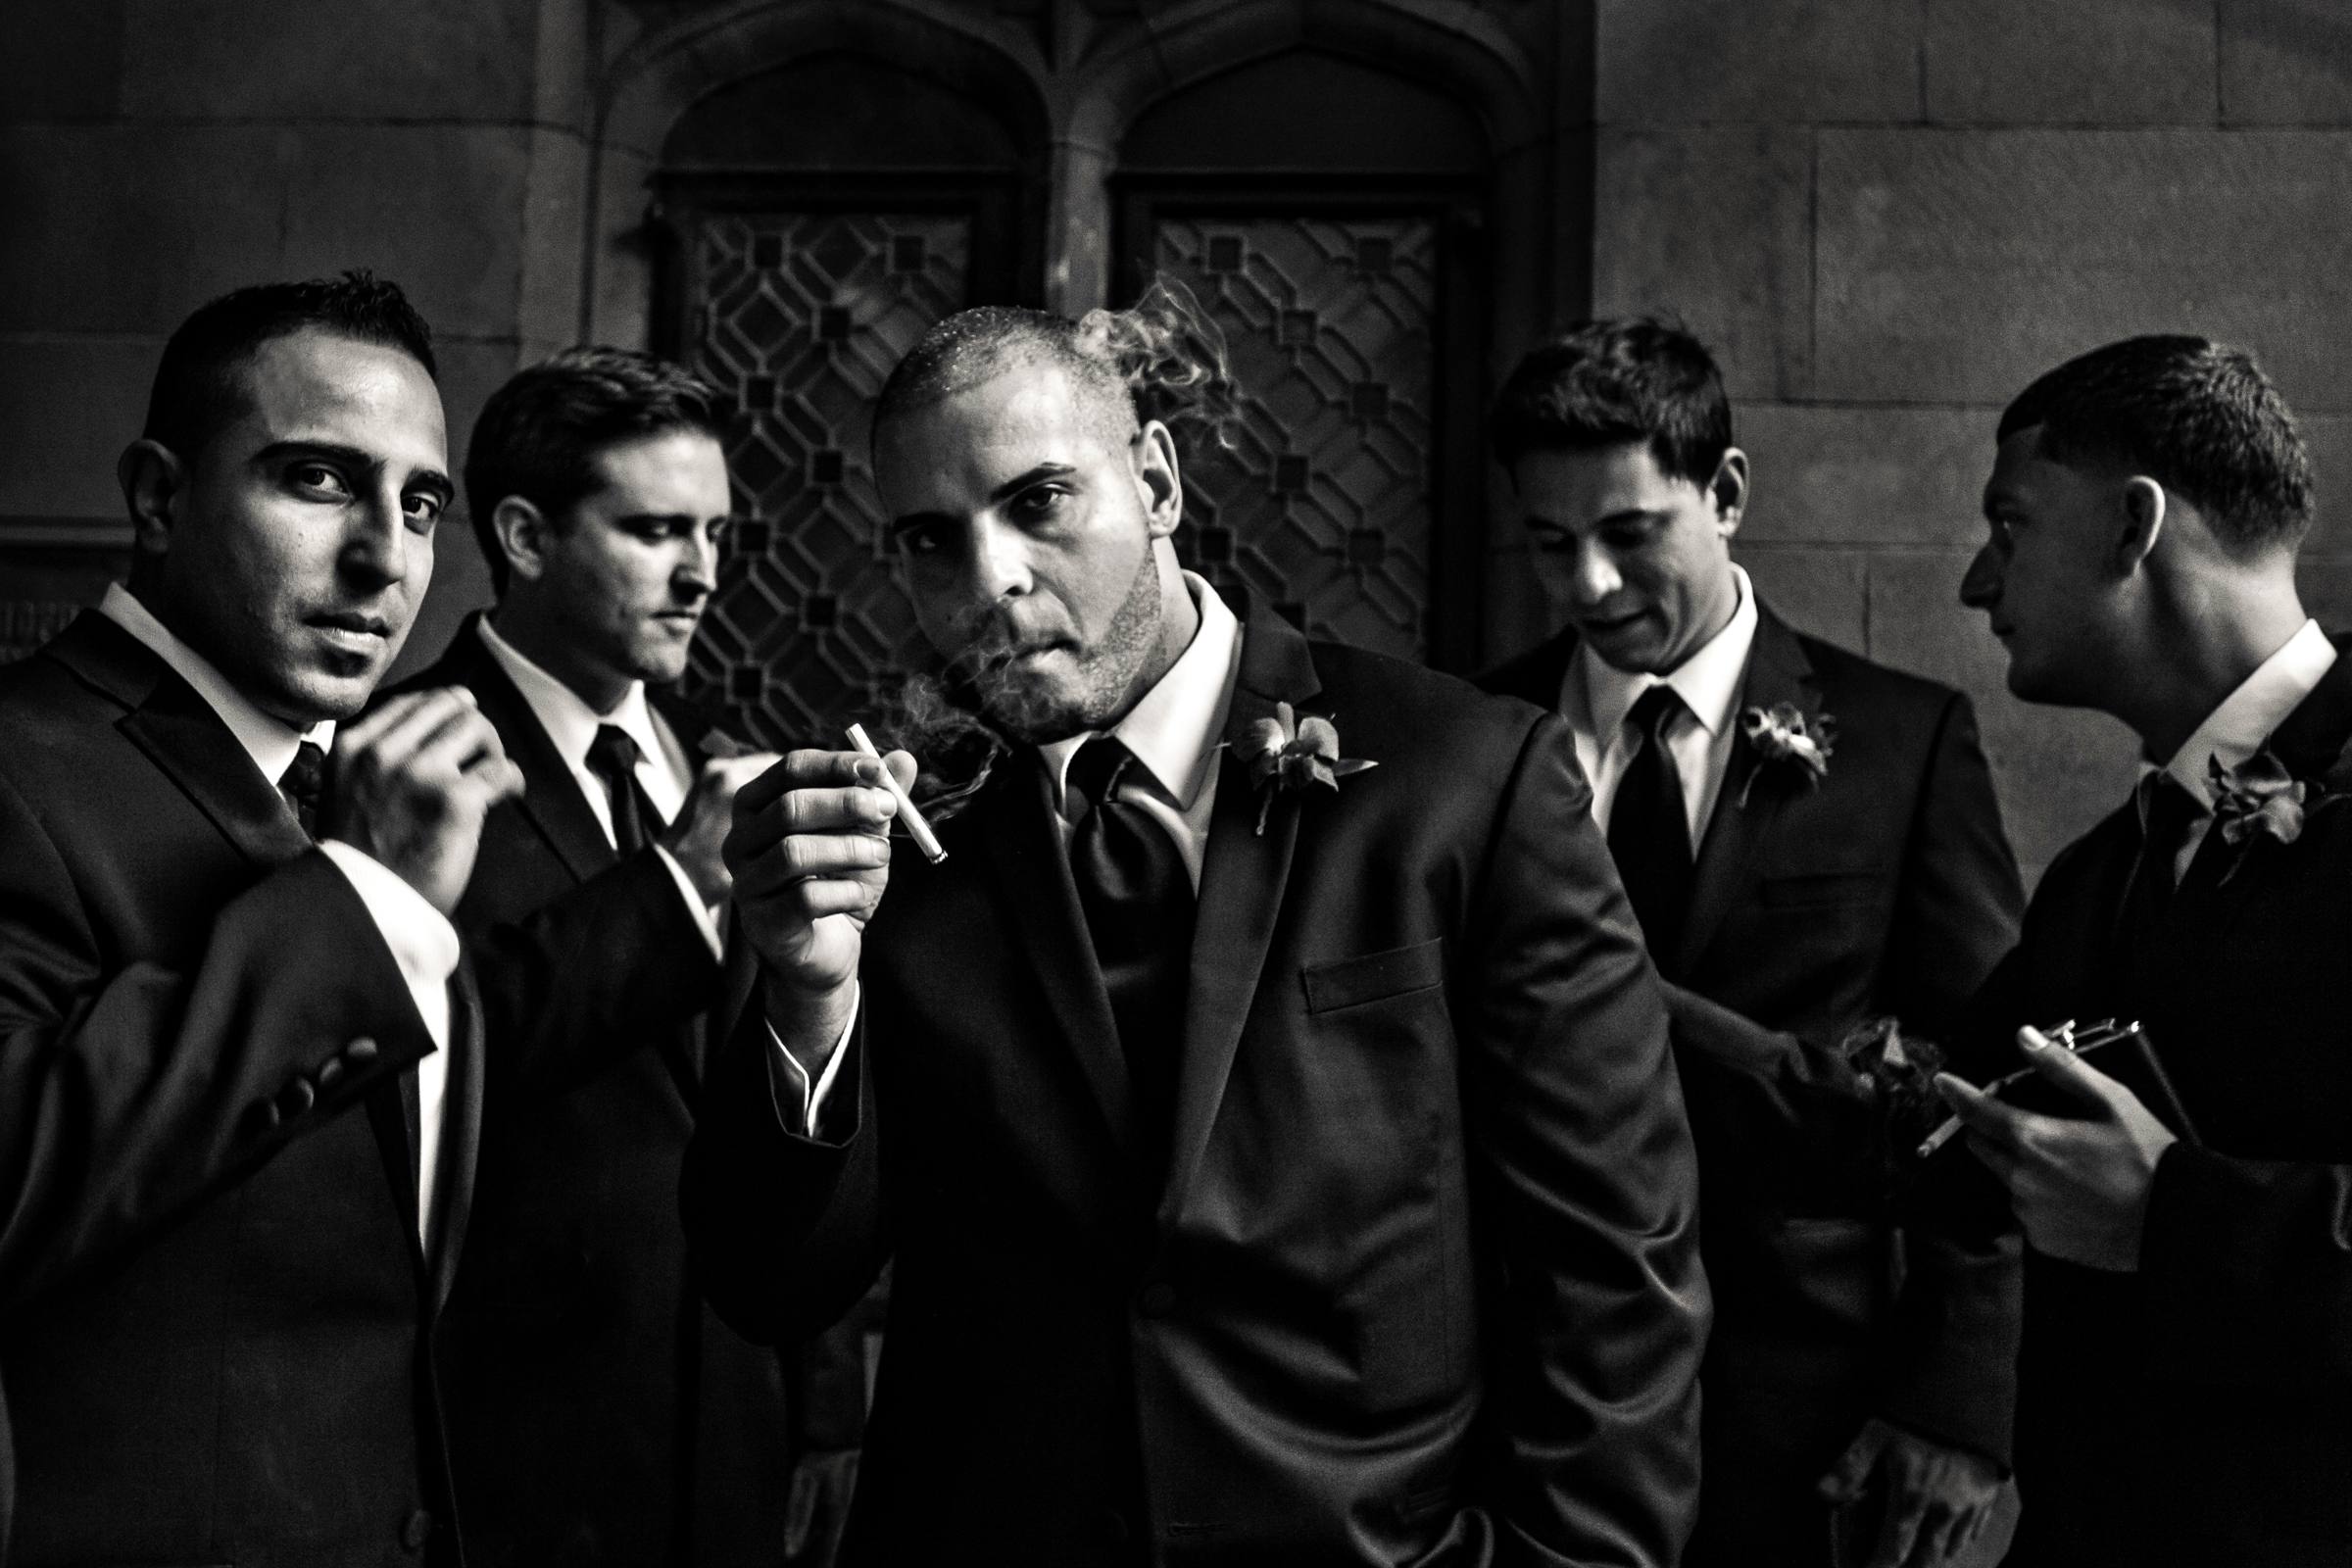 film-noir-portrait-of-groom-and-groomsmen-smoking-jagstudios